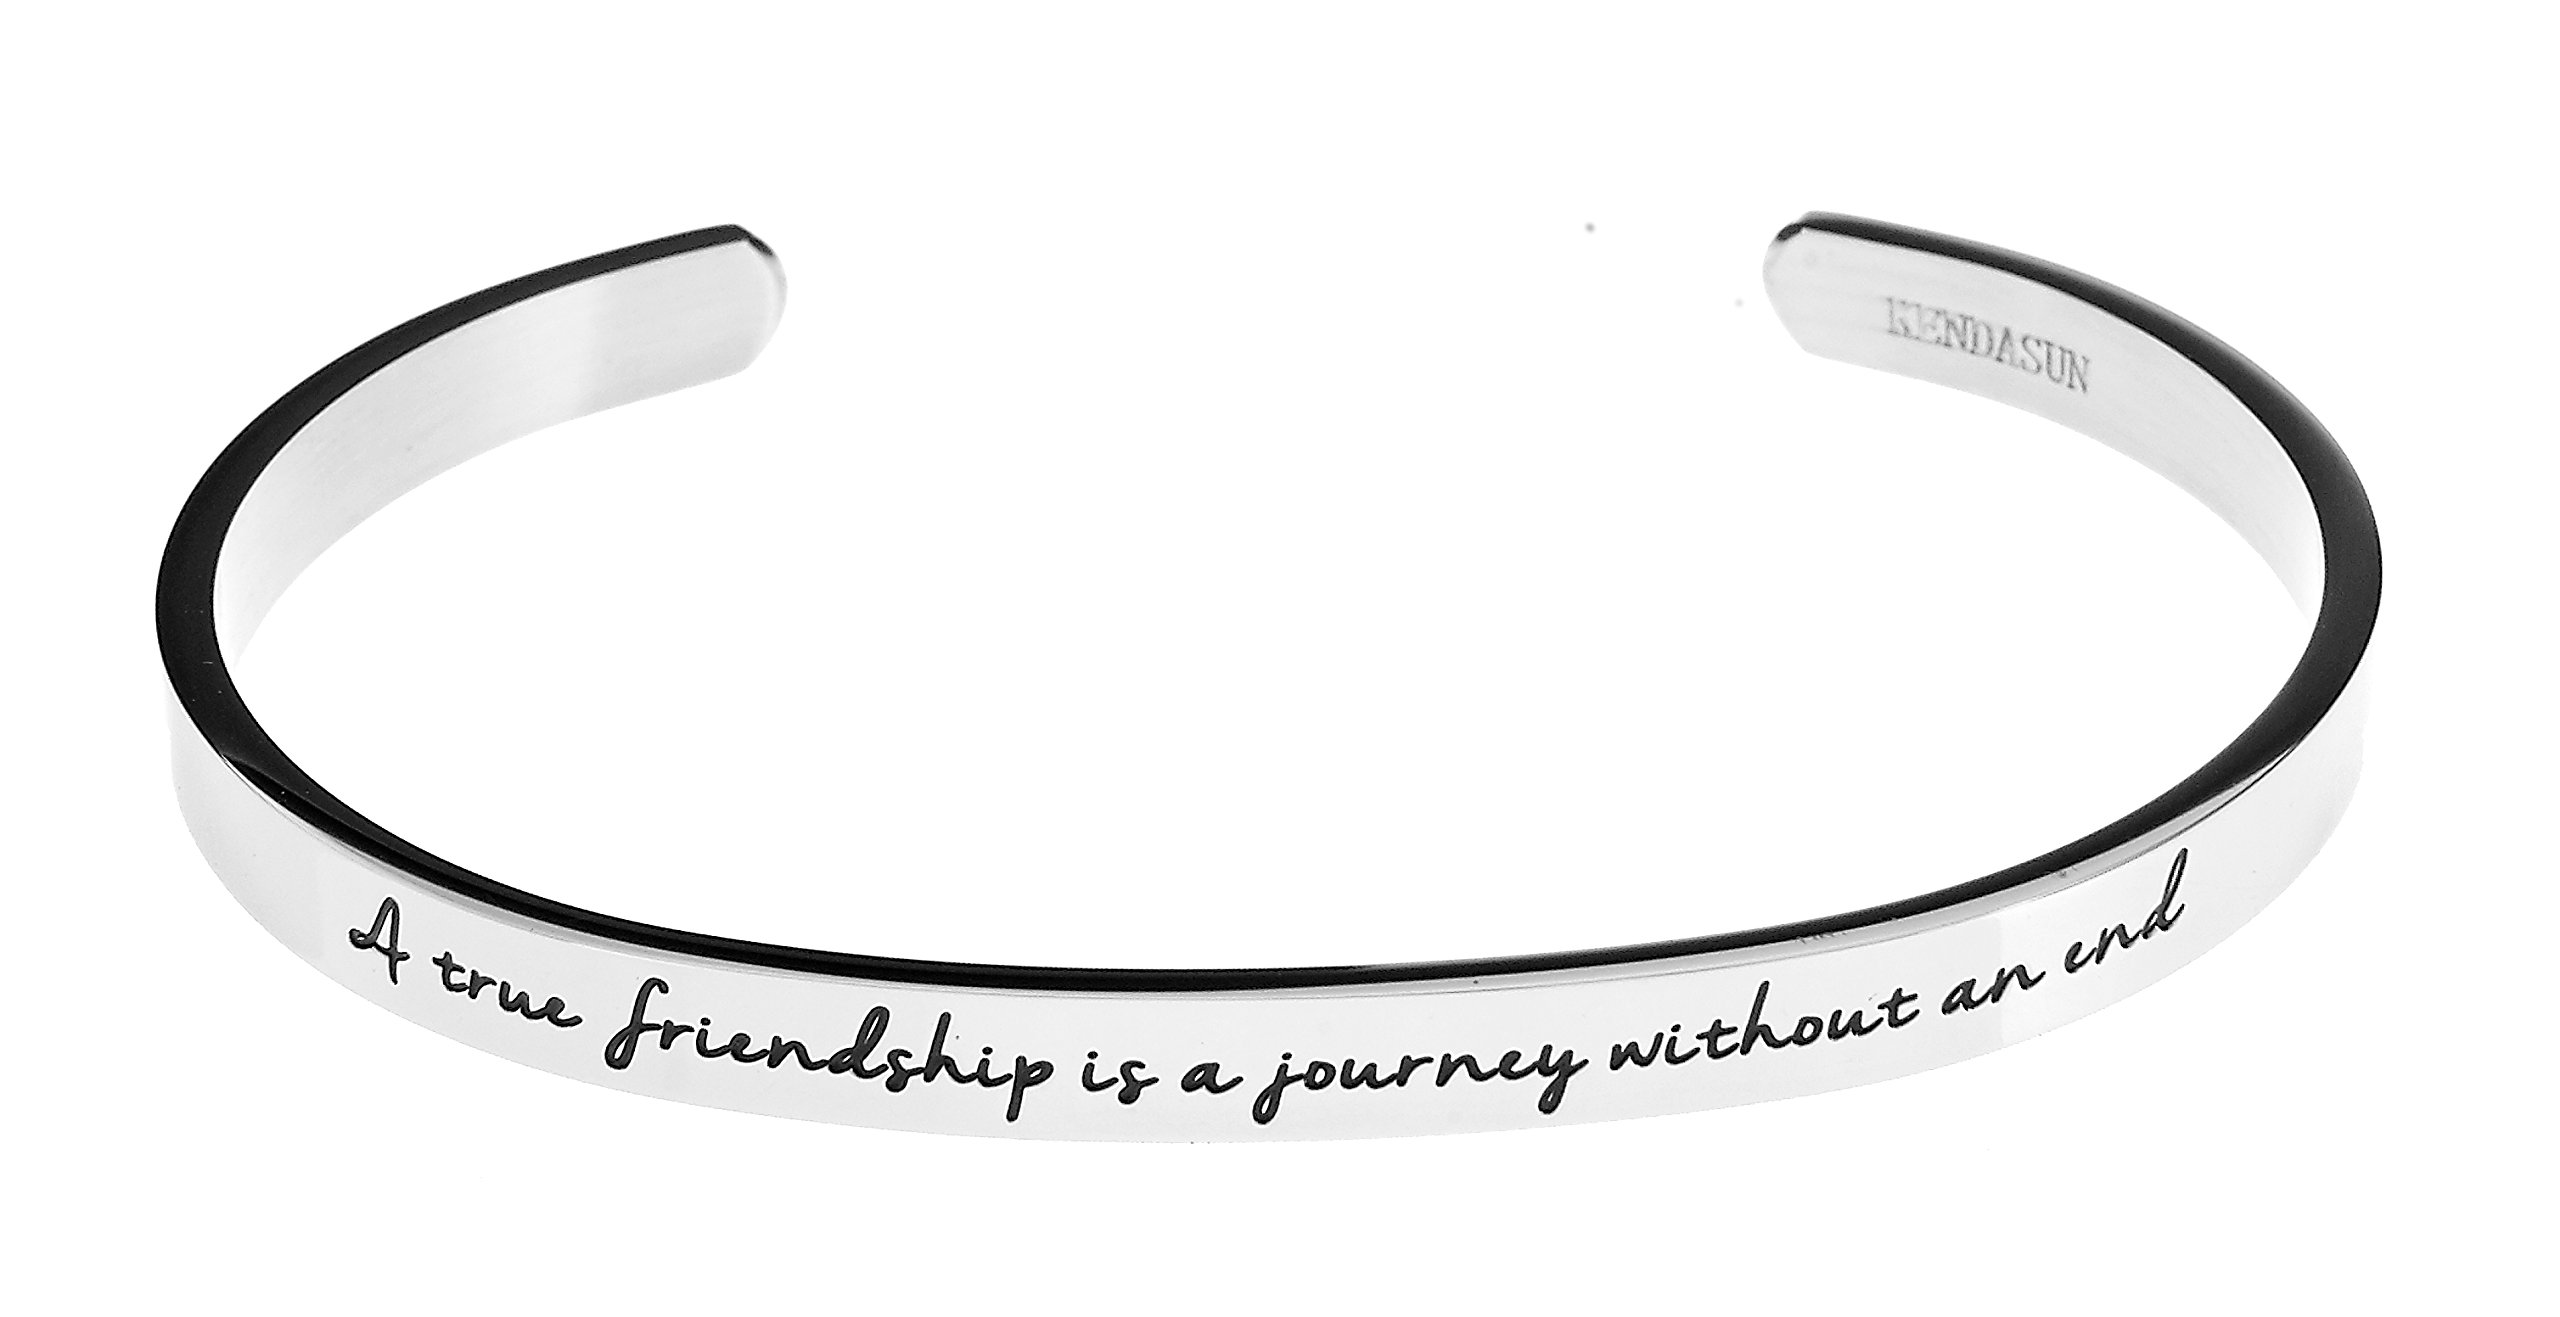 Zoey Jewelry A true friendship is a journey without an end. Premium Stainless Steel Cuff Bangle Bracelet